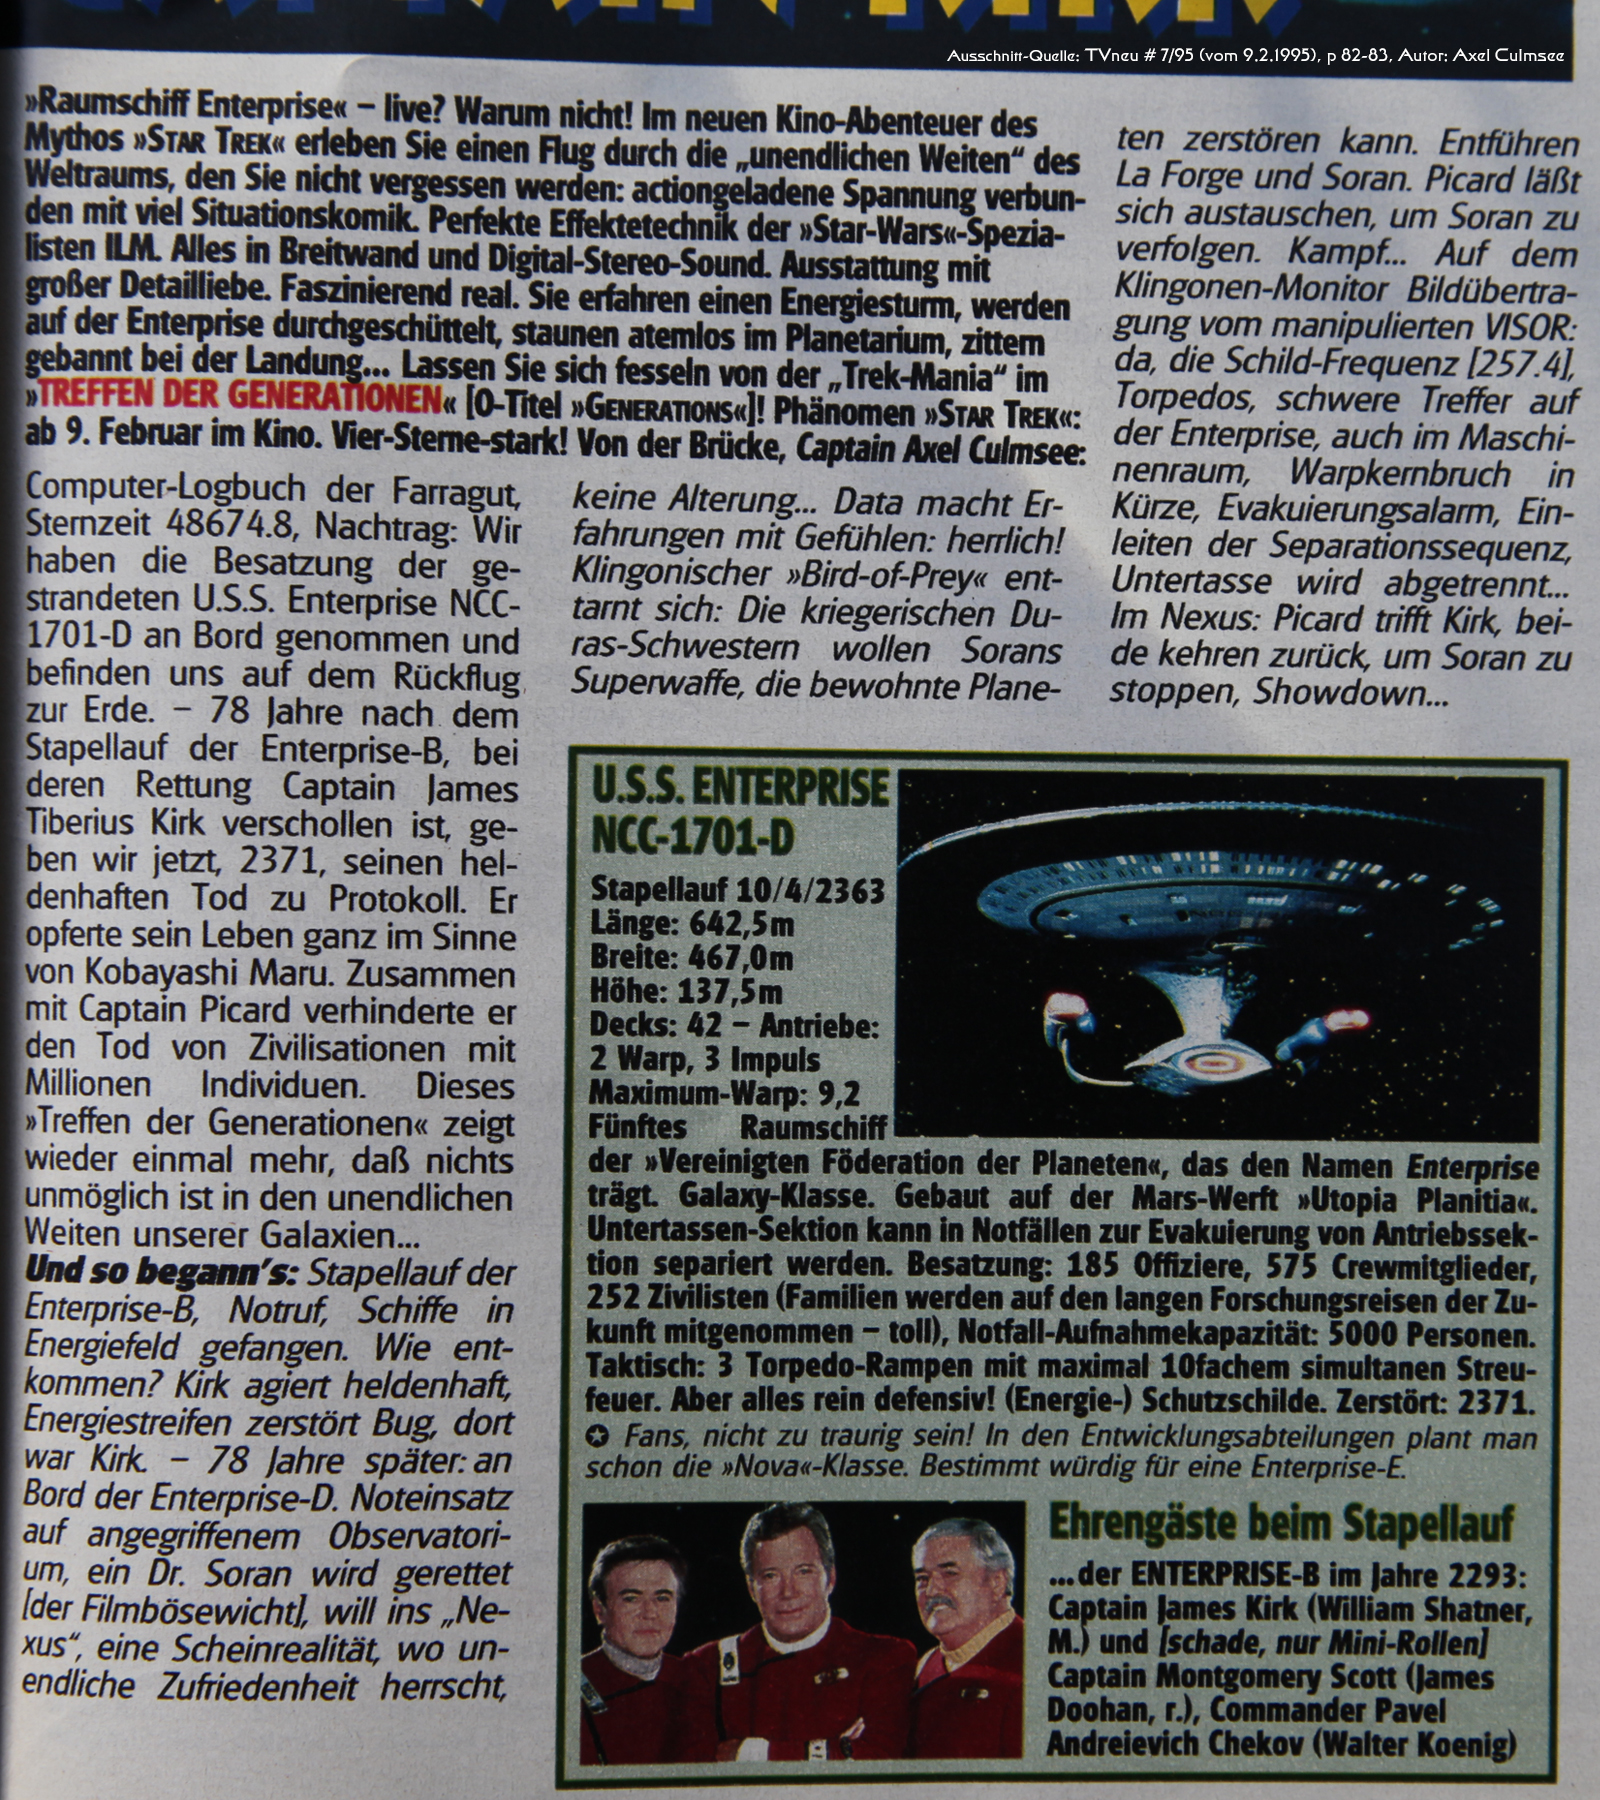 Star Trek Generations-Artikel in TVneu 7-1995 Ausschnitt Text